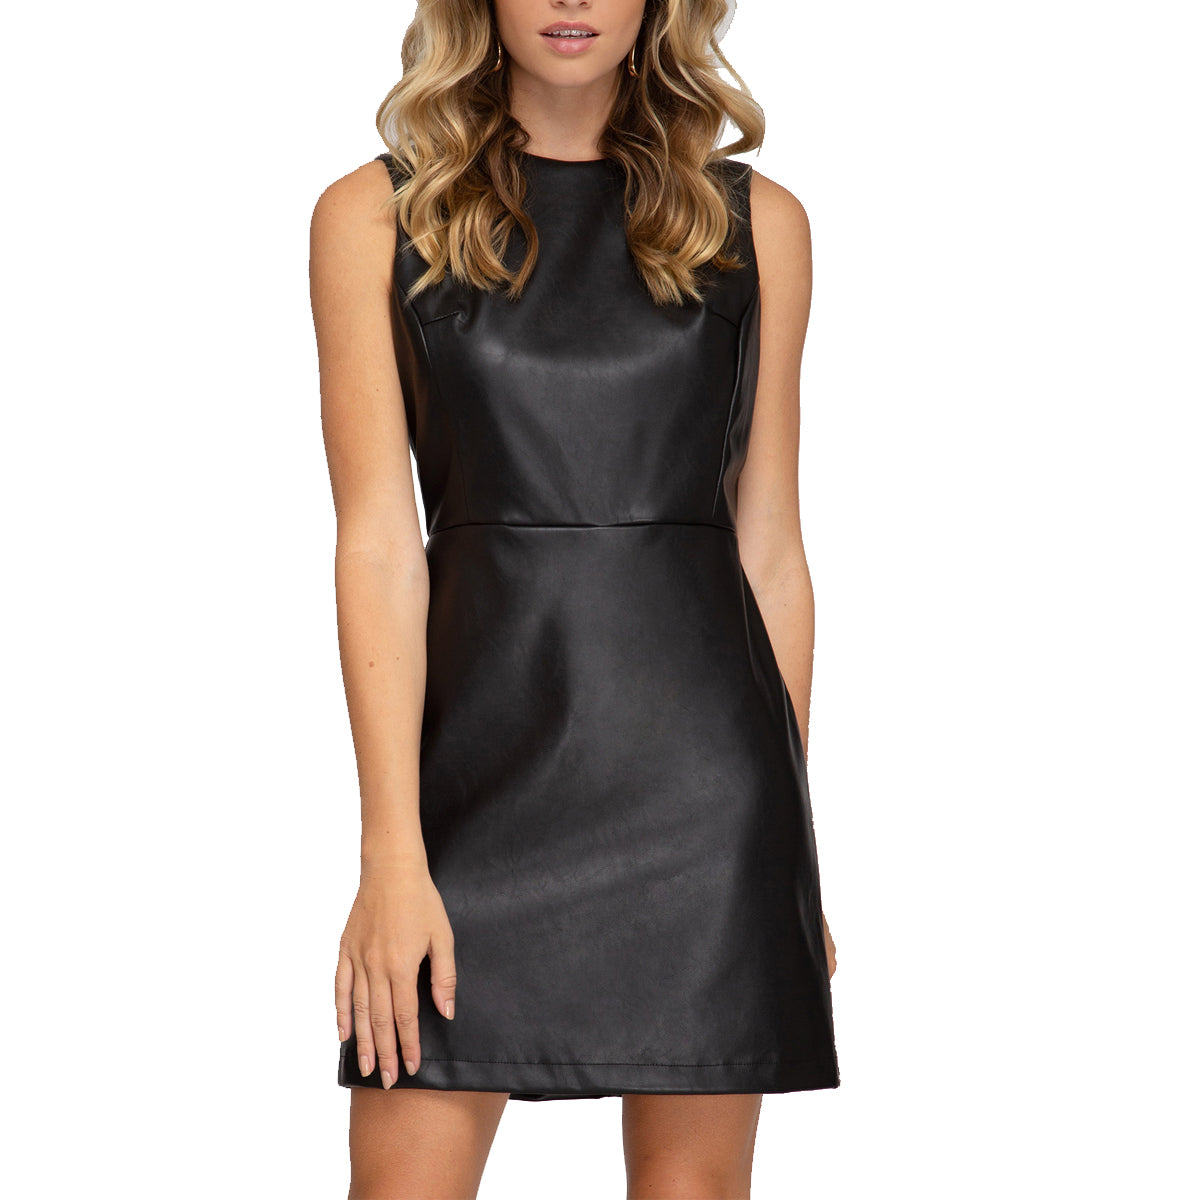 She + Sky Women's Sleeveless Faux Leather Sheath Dress - Black